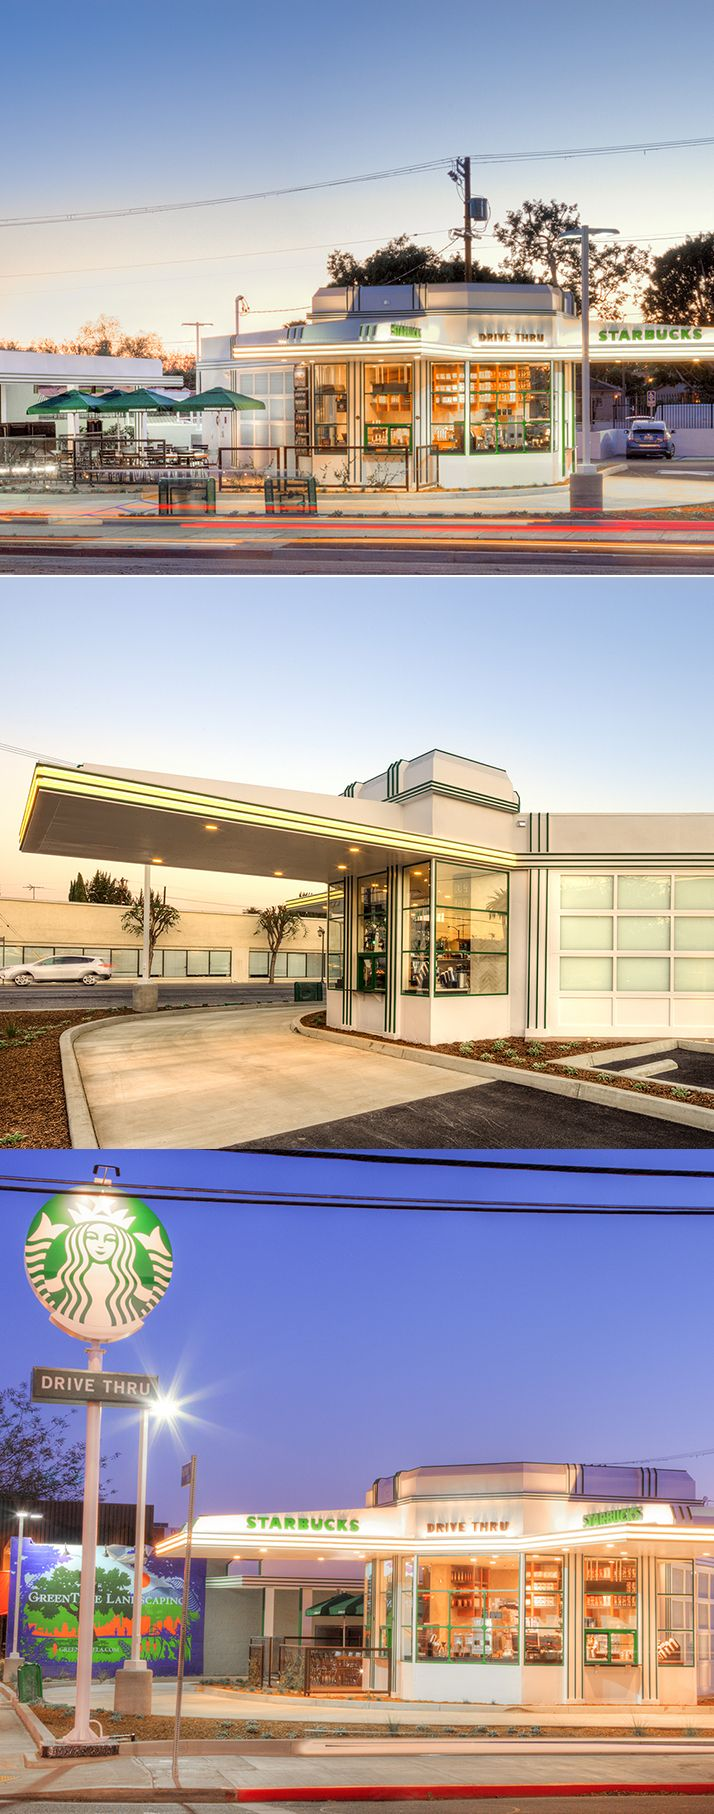 Once a gas station, now a coffee house. Built at the start of the automobile age and the golden era of filmmaking, this store has become an iconic restoration of a historic California landmark.